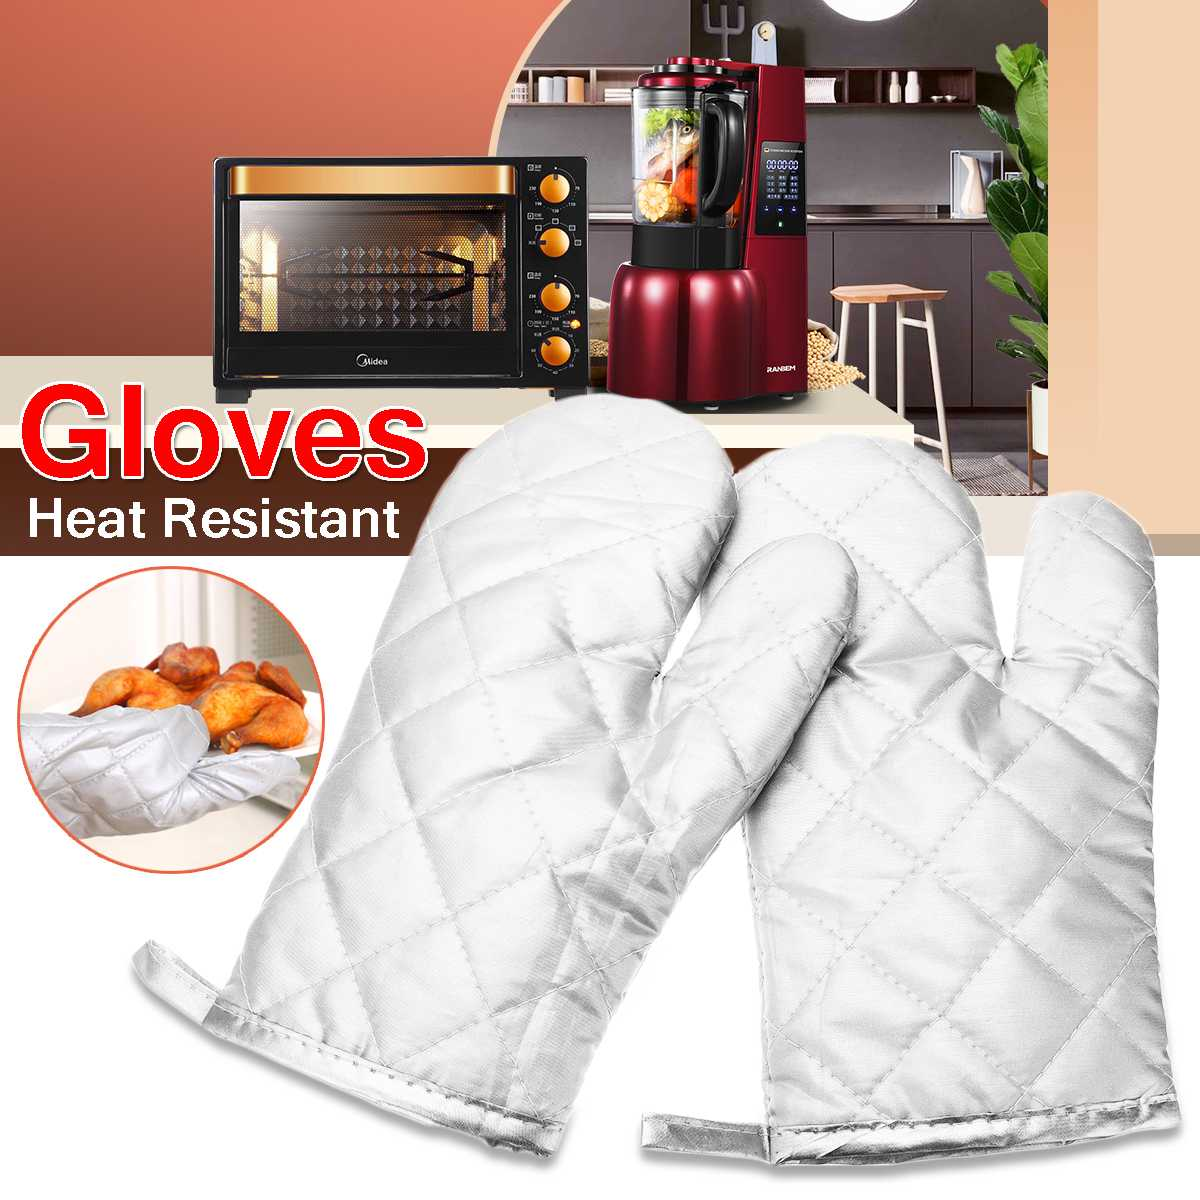 ■ BBQ//Oven Mitts Heat Resistant Up to 800 Degree C  Blue Spider Web Pattern